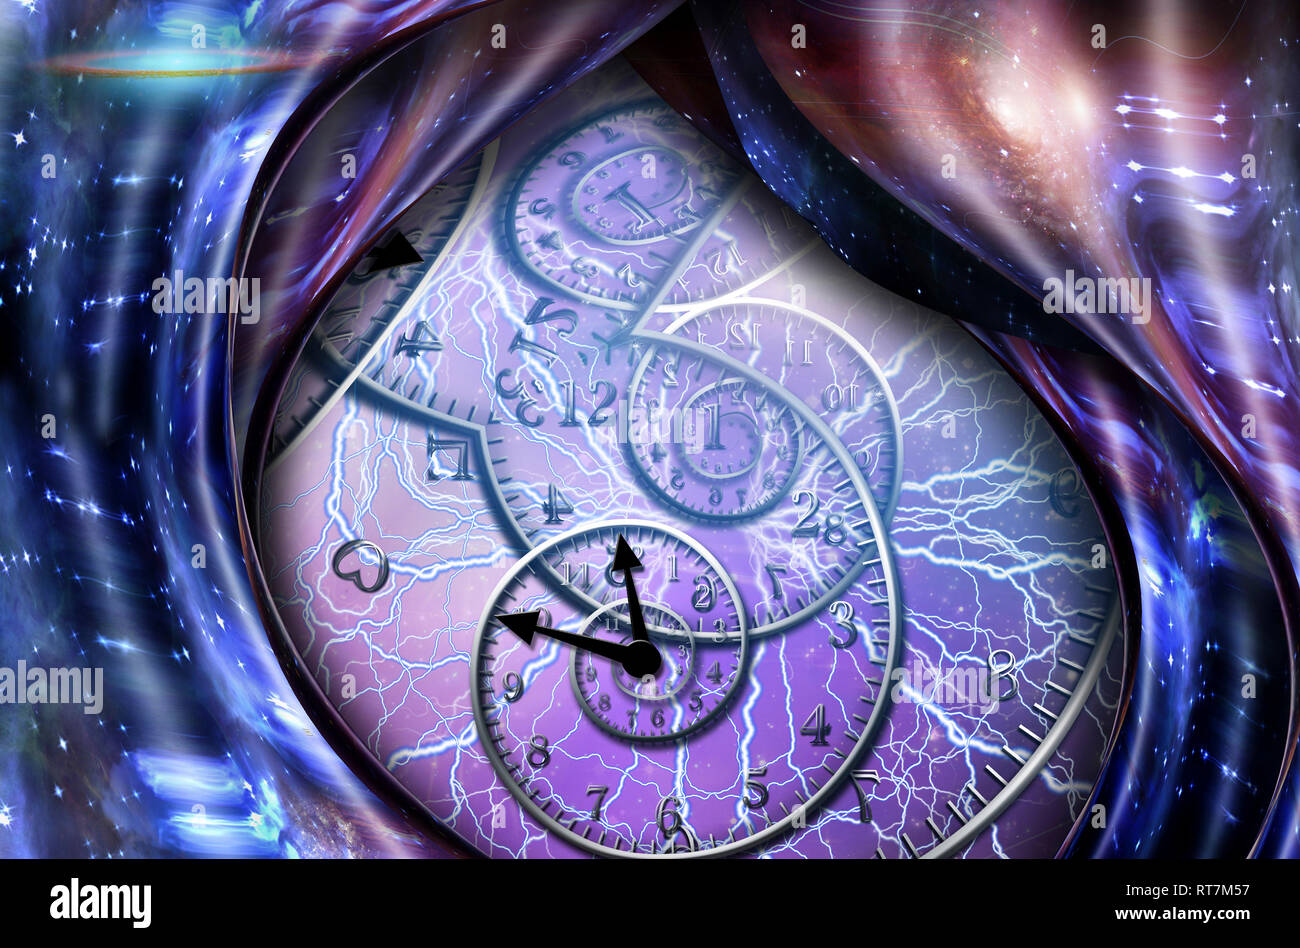 Surrealism. Spirals of time and warped space. - Stock Image